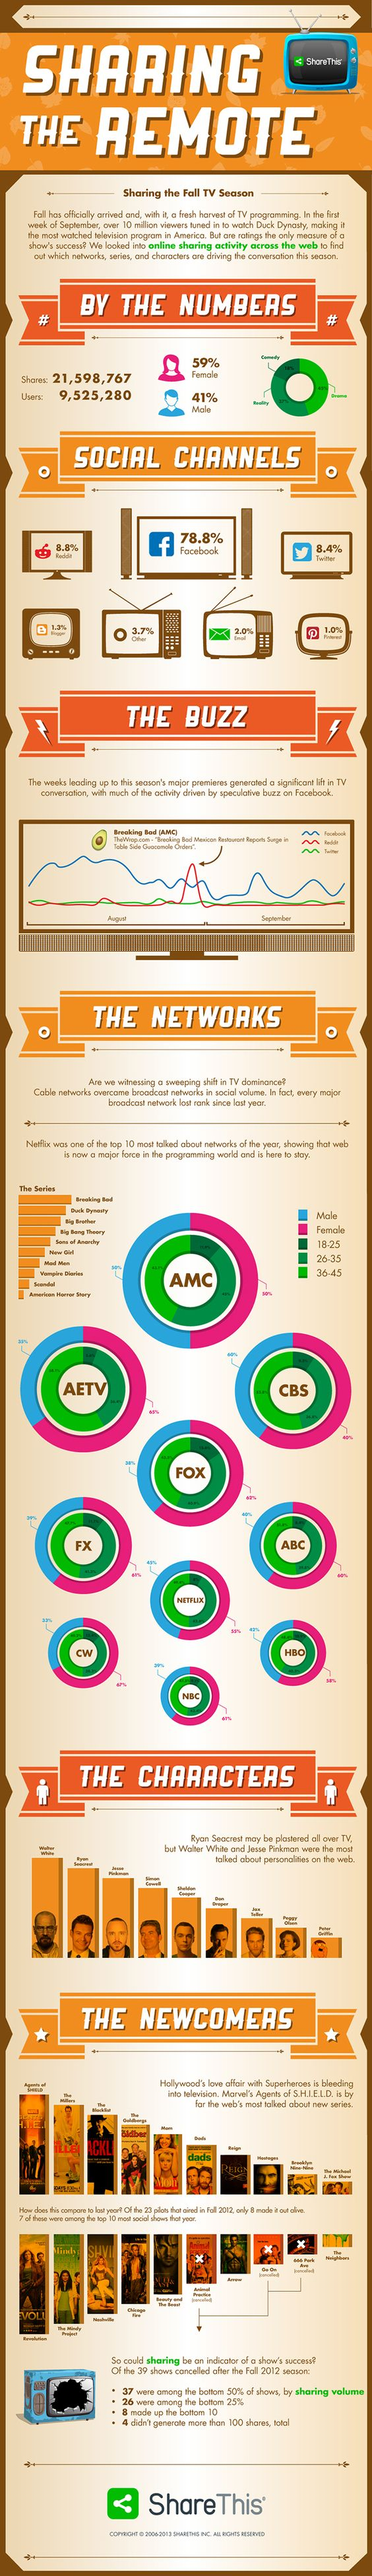 Our newest infographic on Fall TV sharing trends! http://shar.es/KyFFG